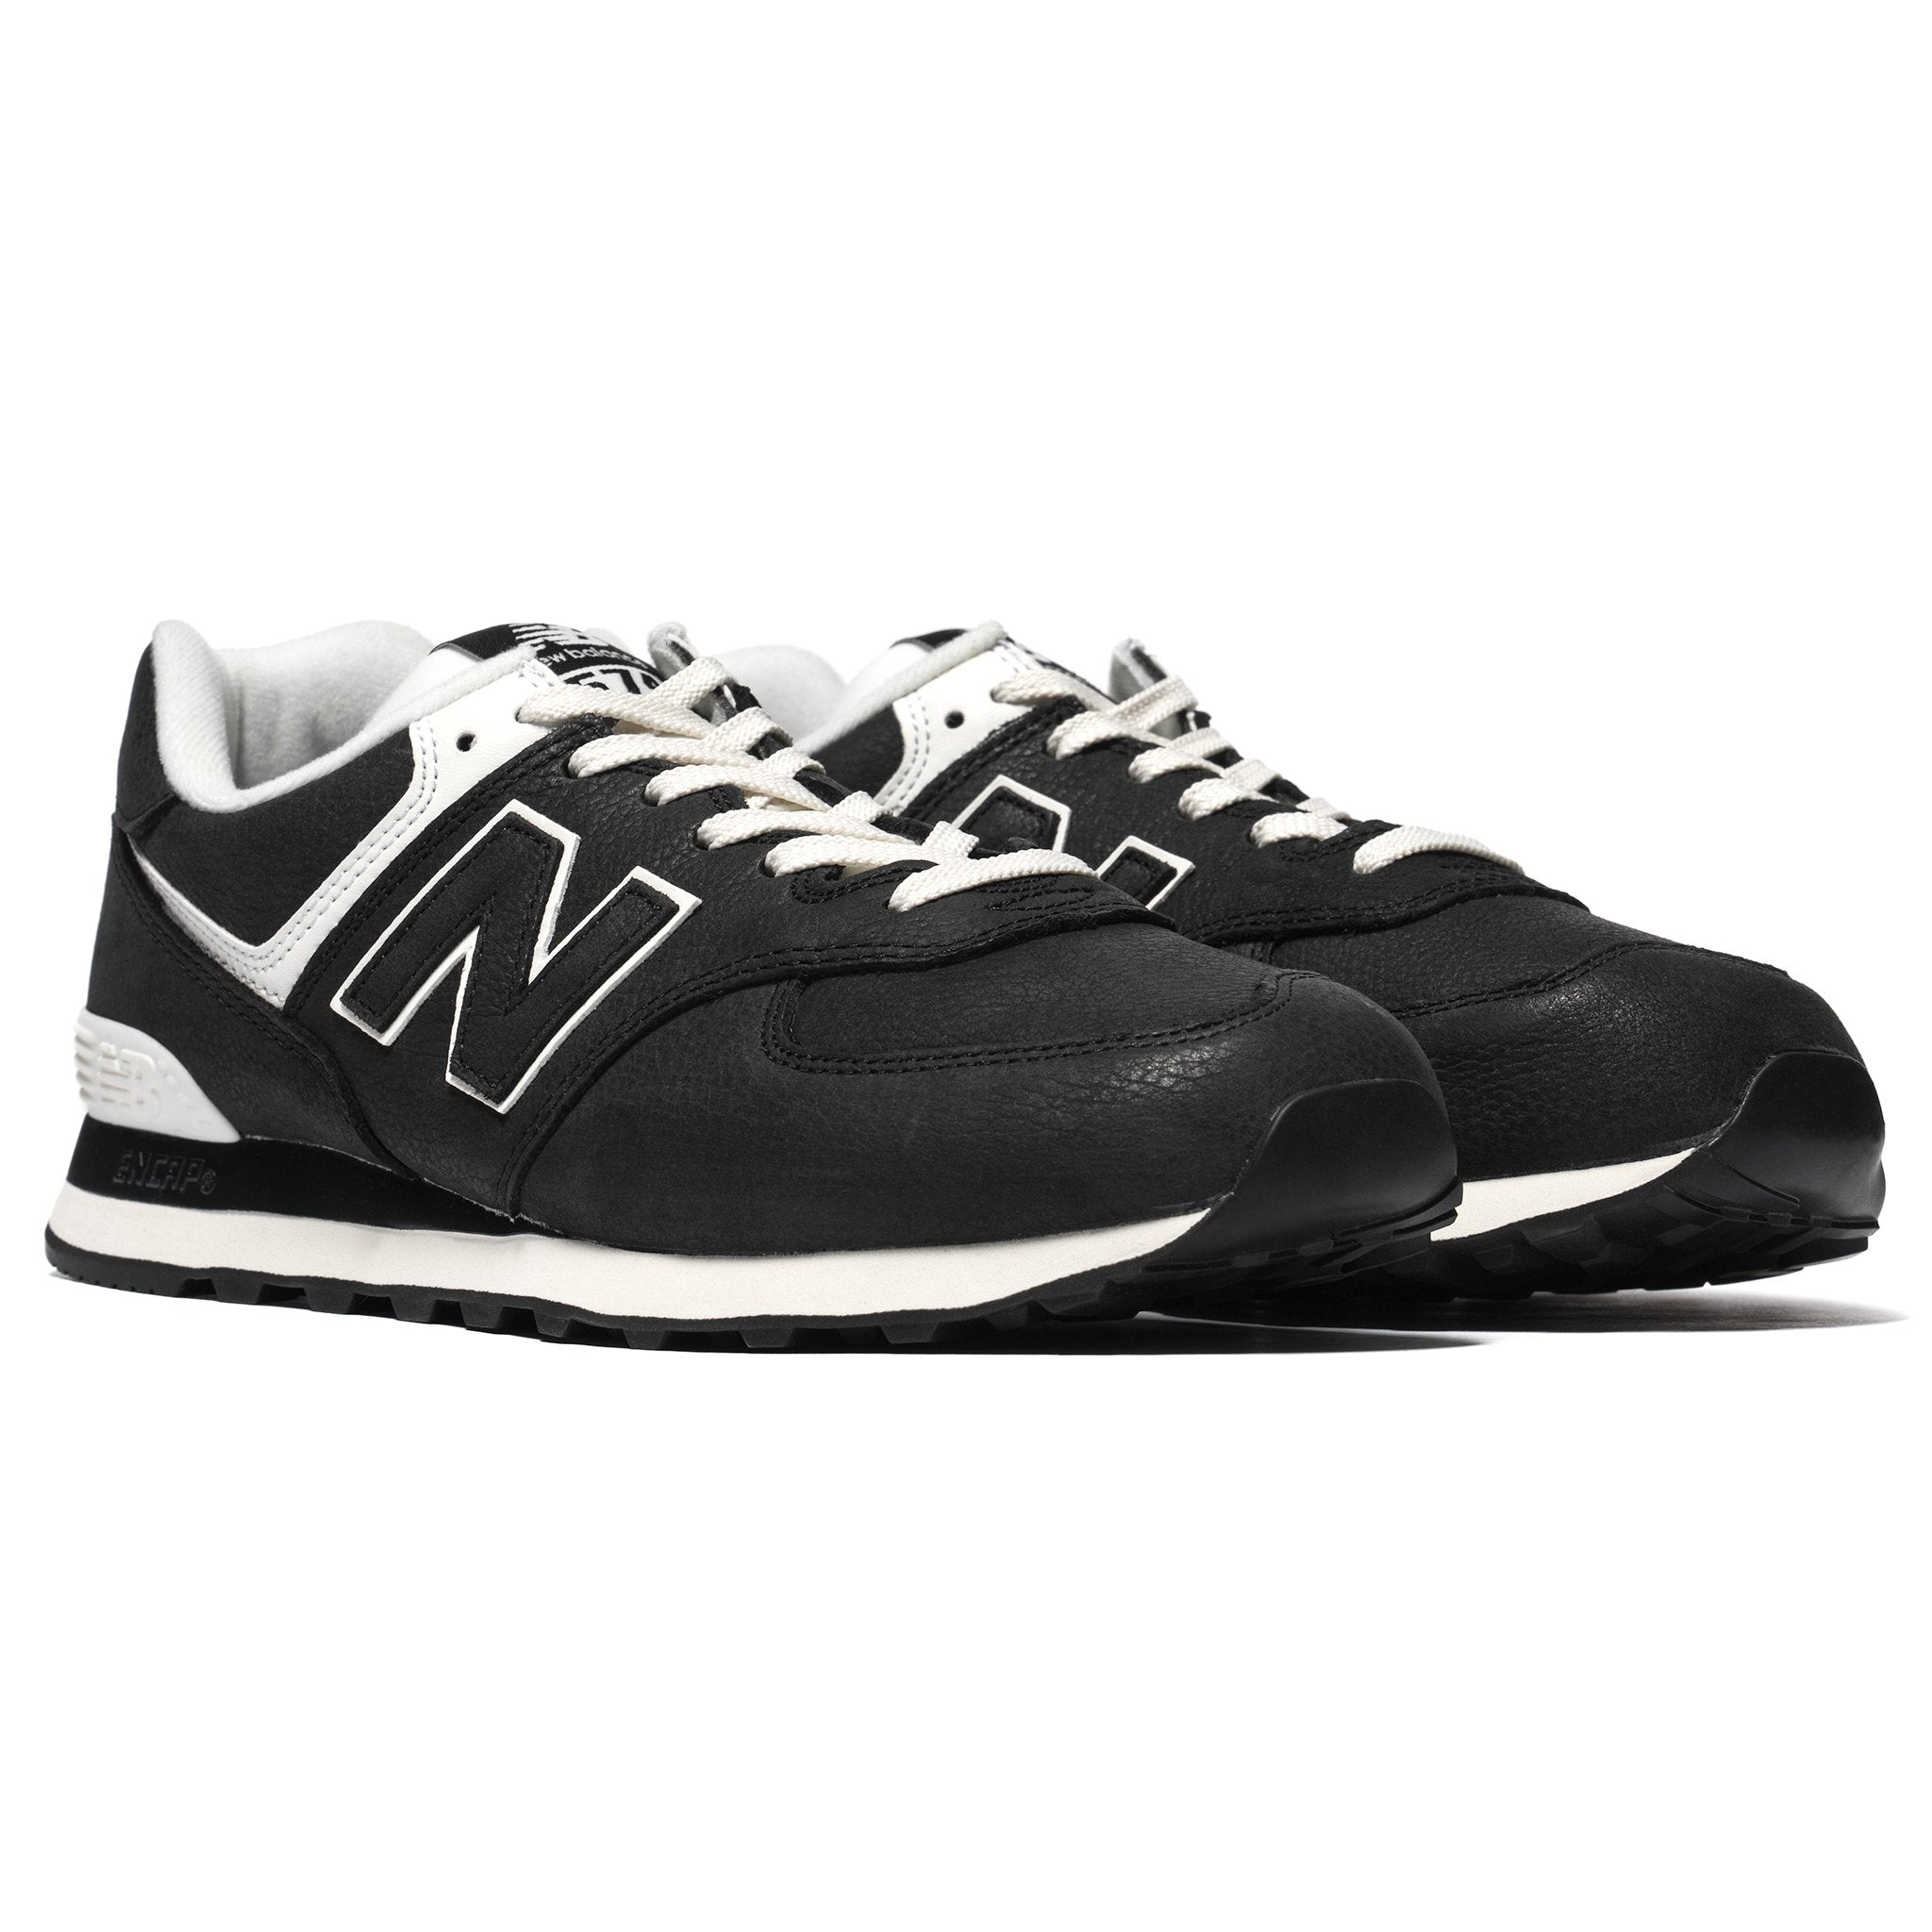 eYe Junya Watanabe COMME des GARCONS x New Balance ML574EJ1 - Black-Preorder Item-Navy Selected Shop